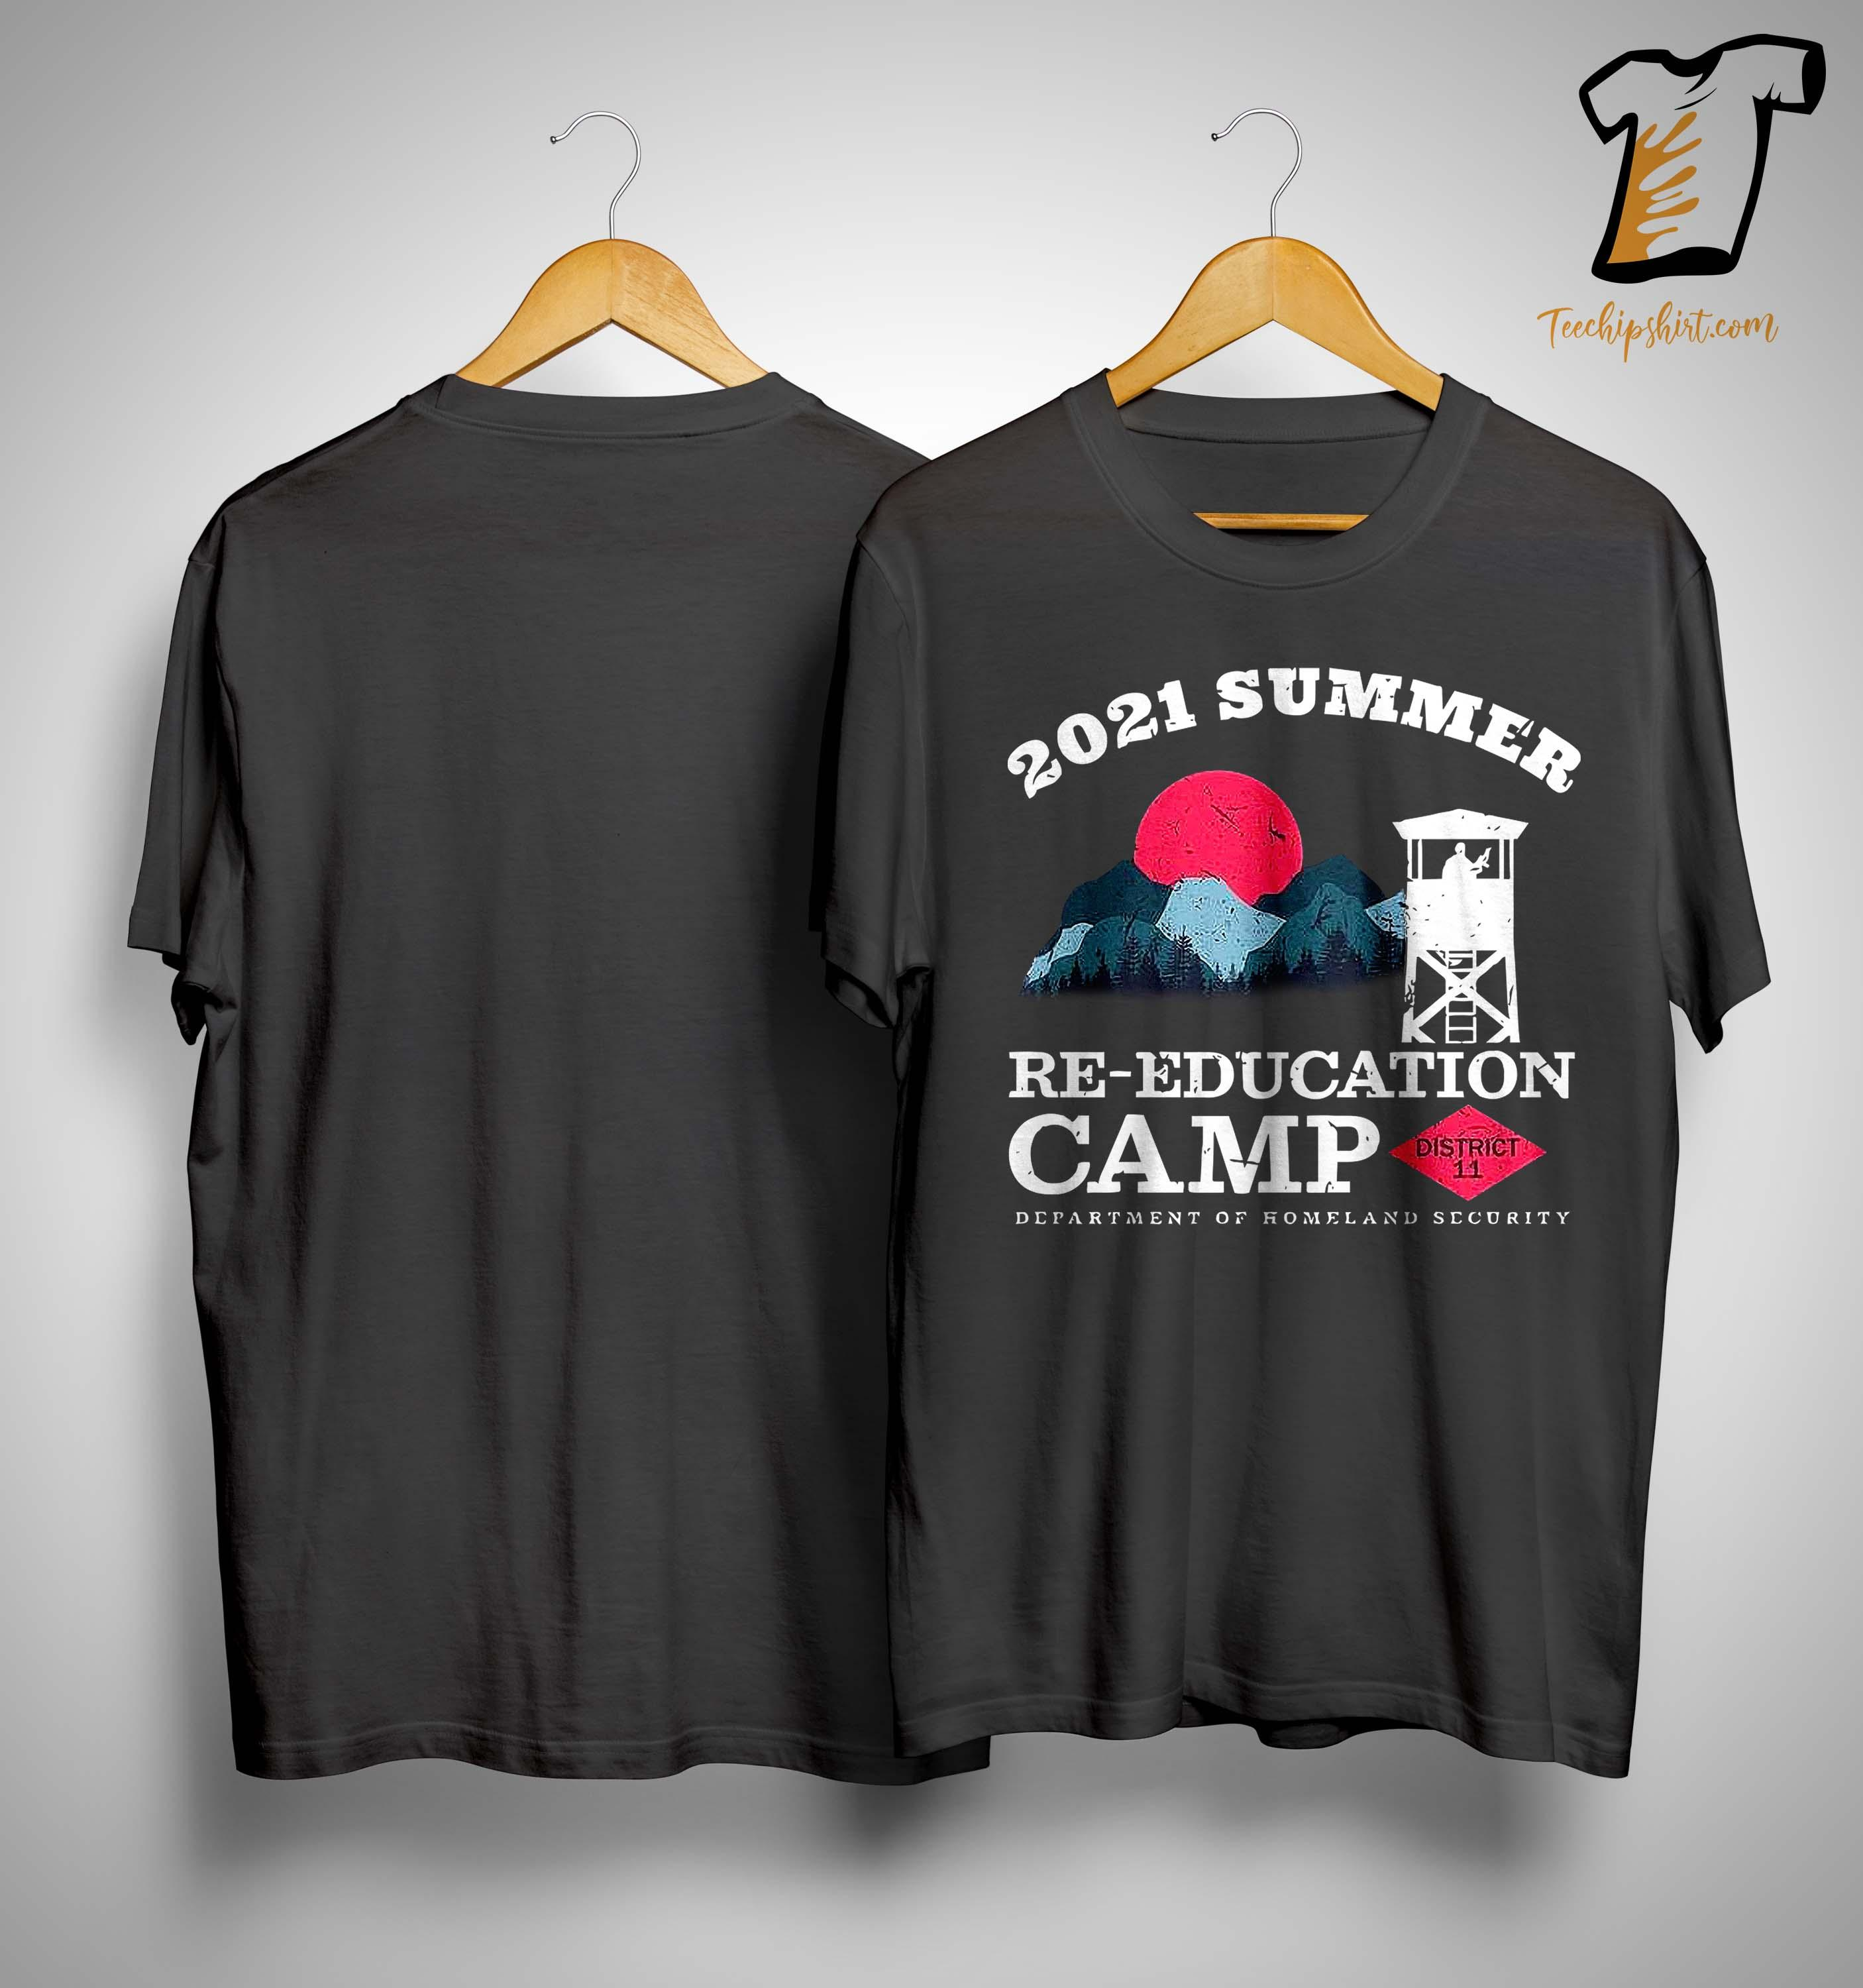 2021 Summer Re Education Camp District 11 Shirt